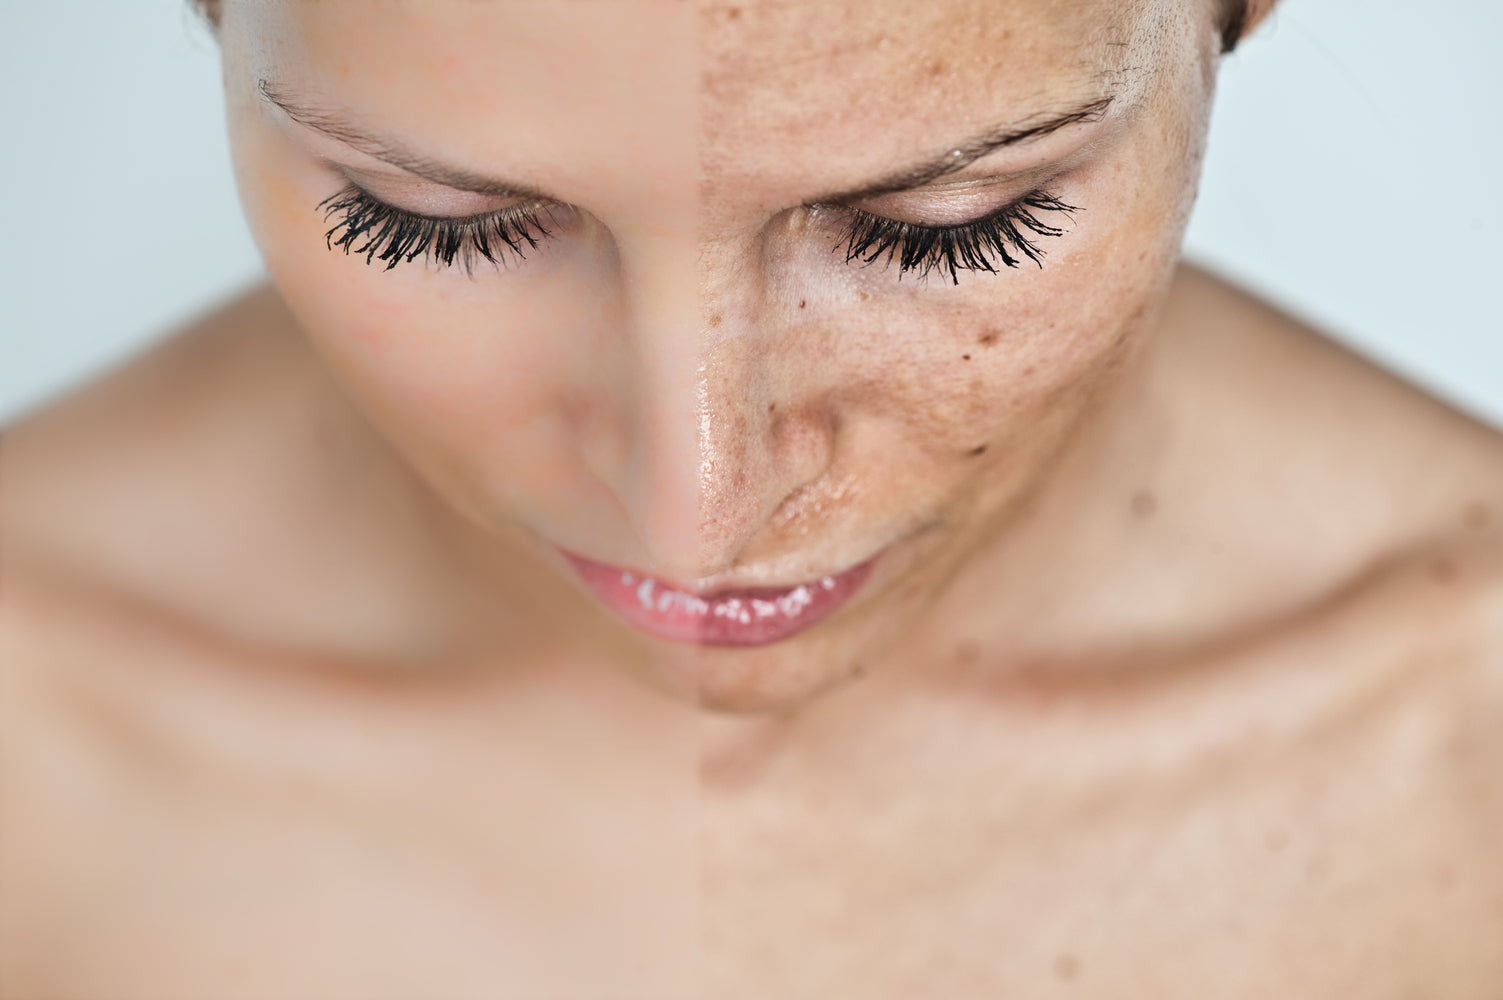 Woman looking down with half of face damaged by sun